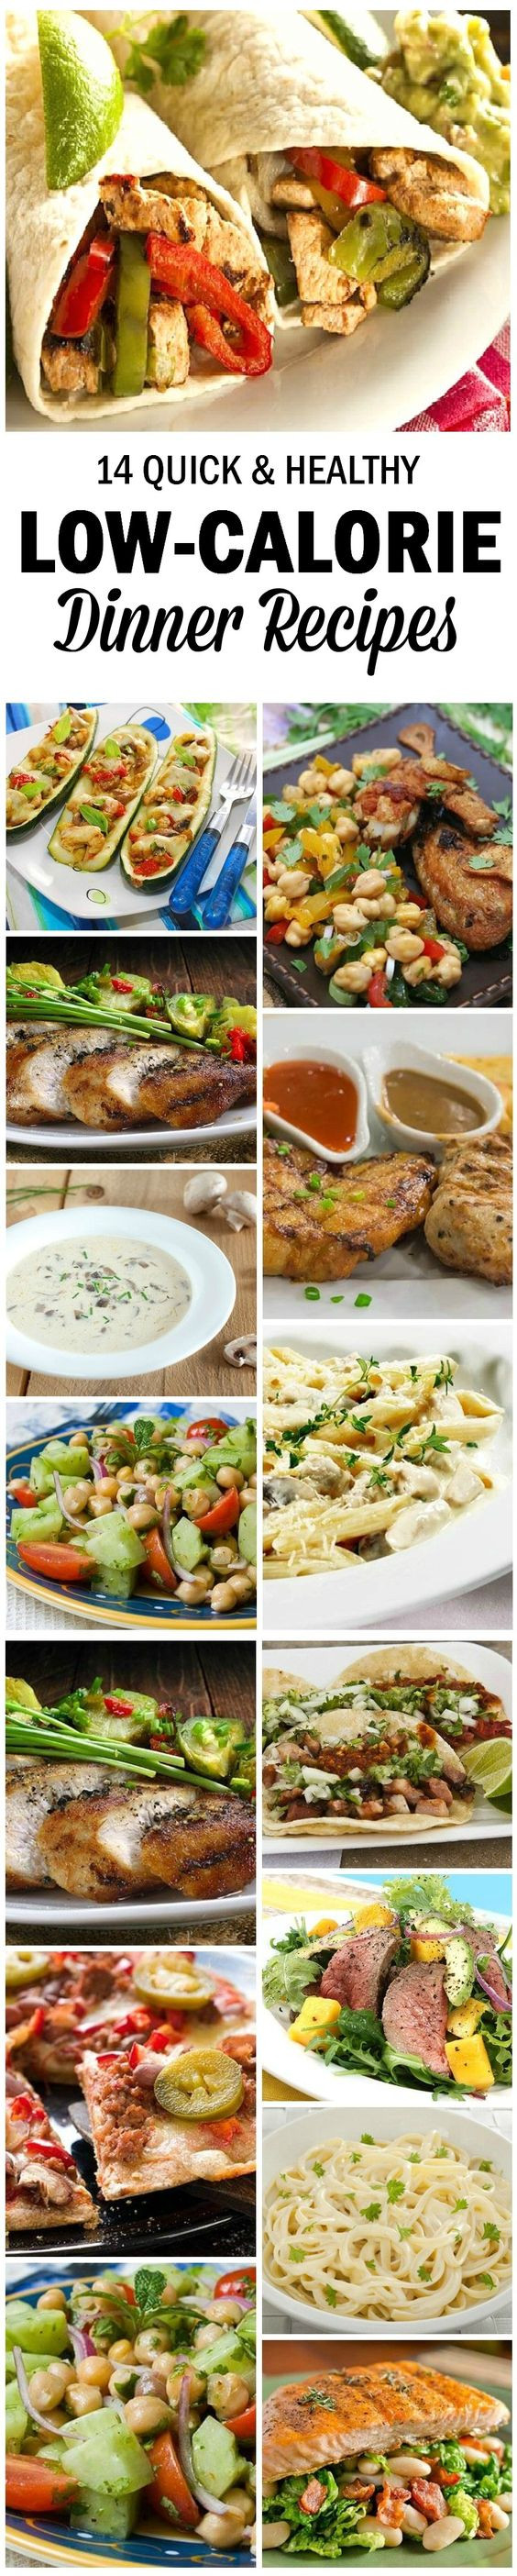 Quick Low Calorie Dinners  14 Quick And Healthy Low Calorie Dinner Recipes